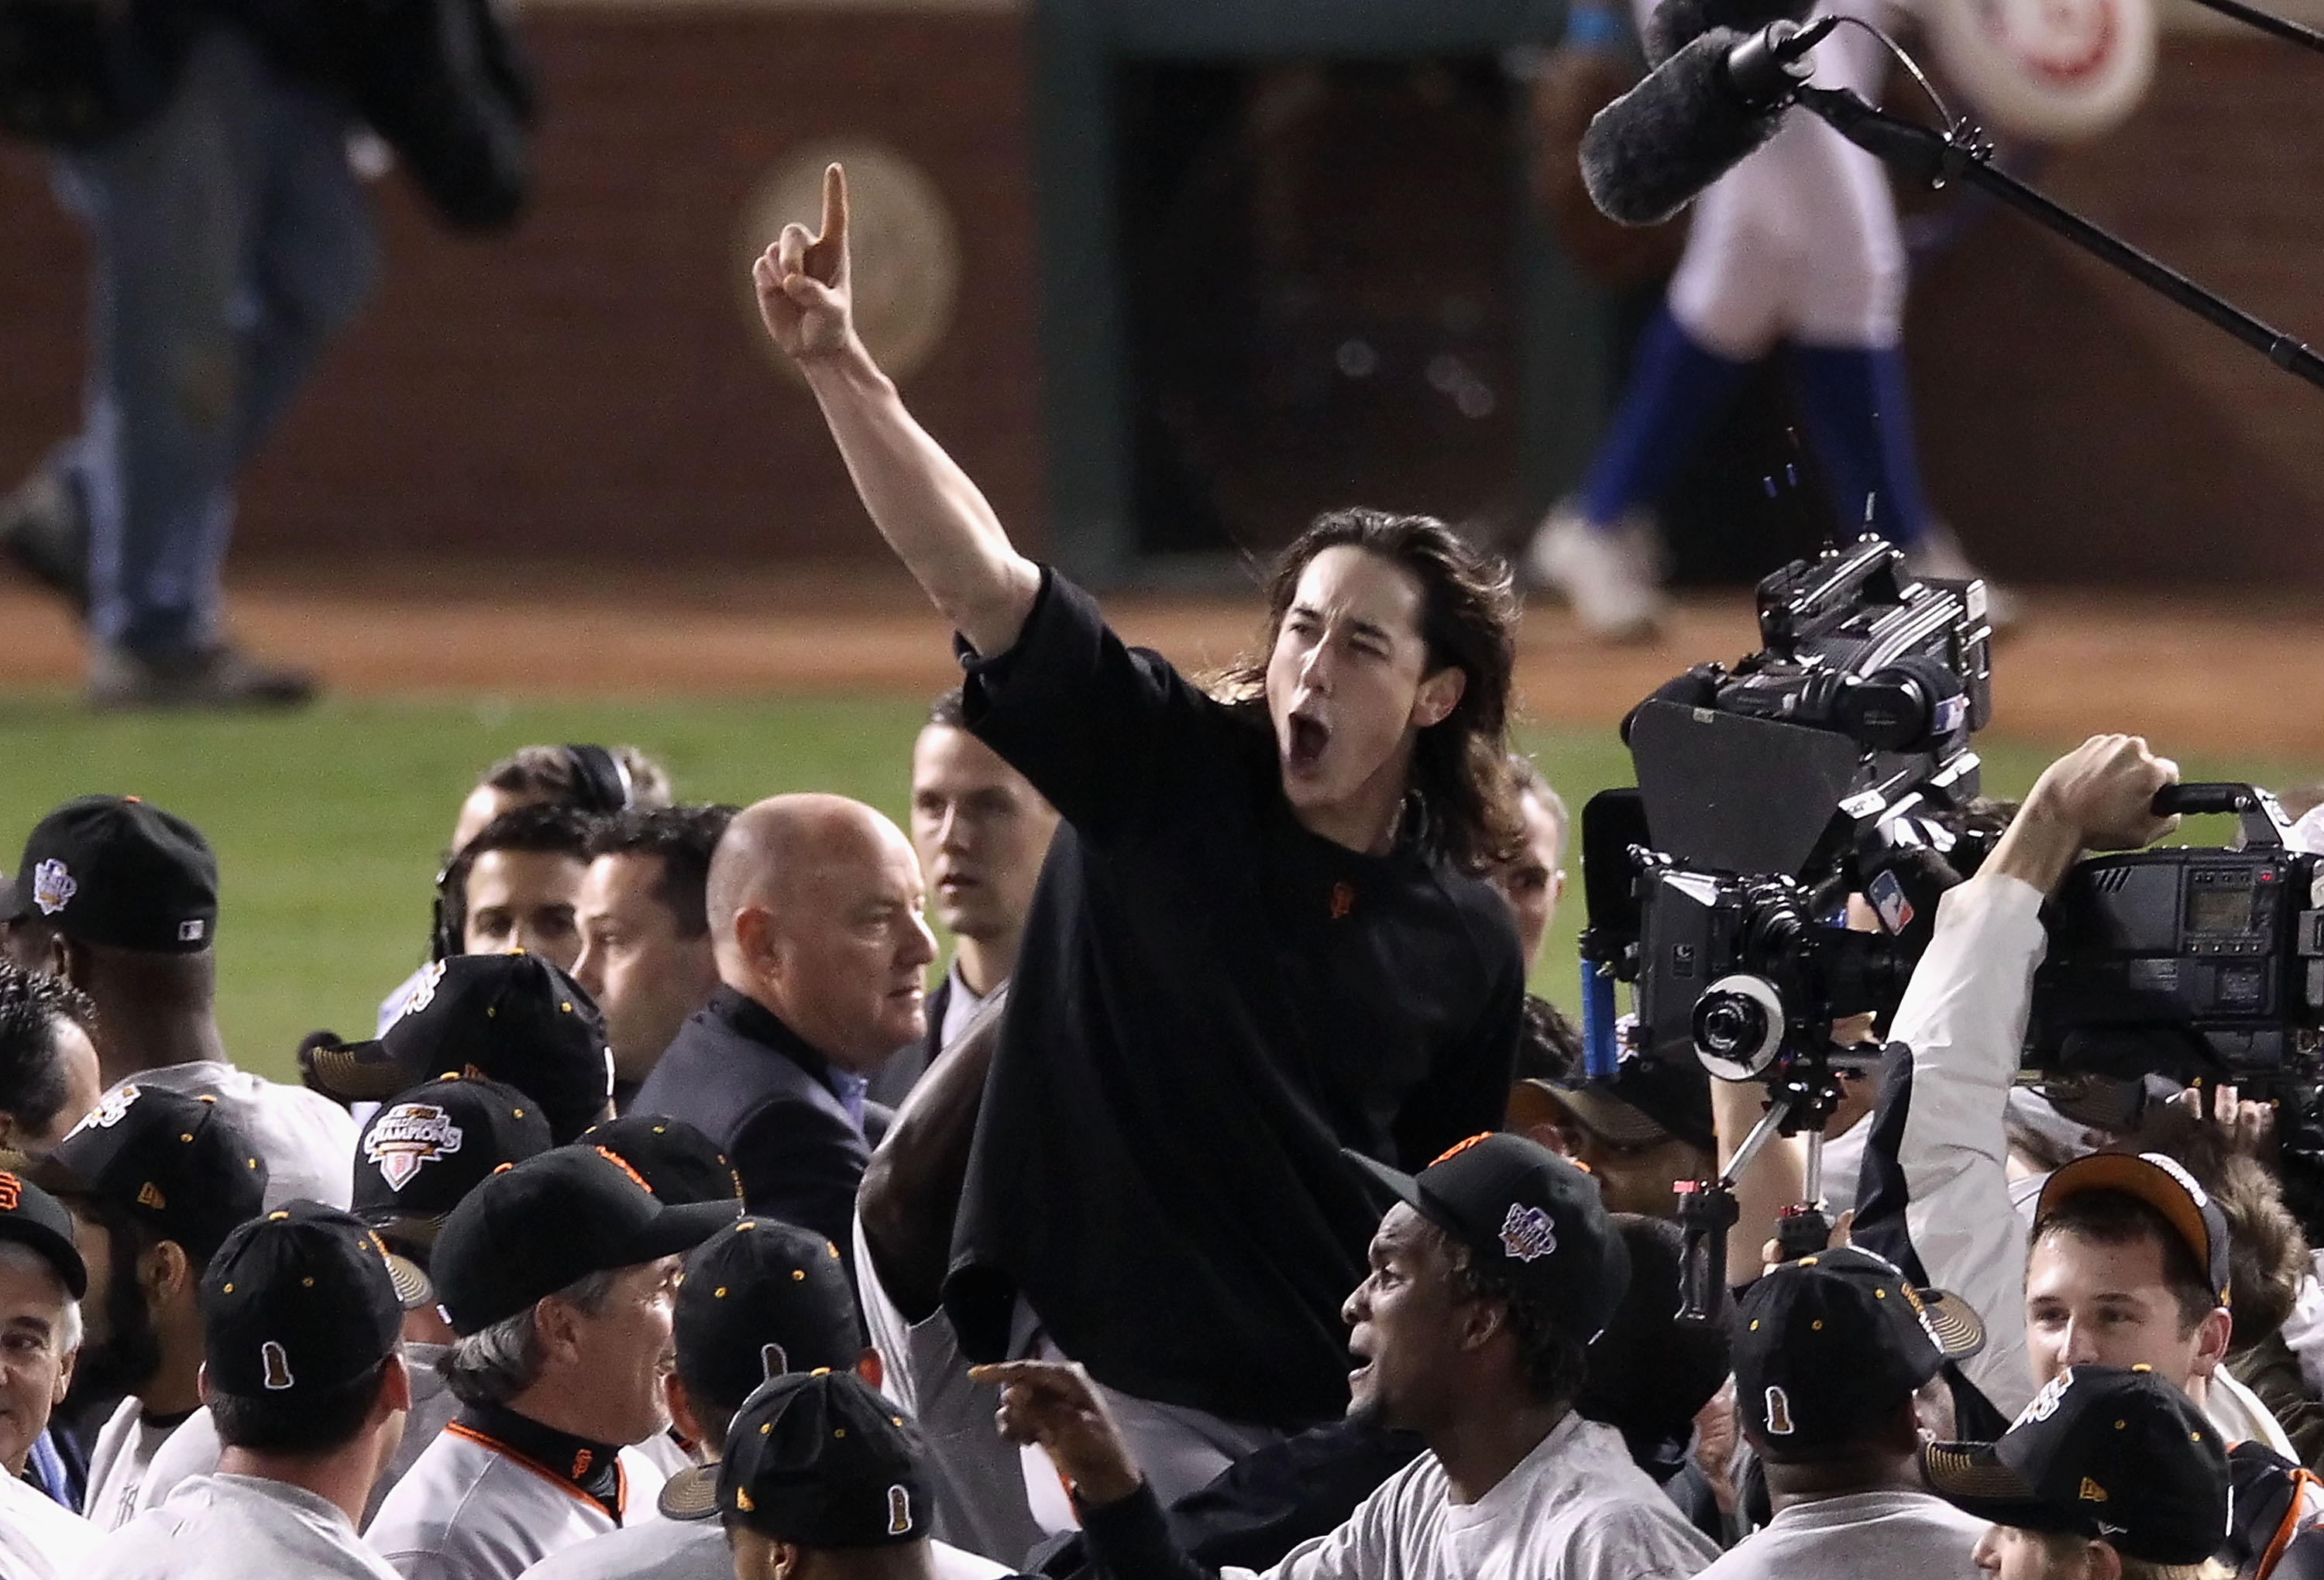 Lincecum and the Giants did it in 2010. Can Cahill and the A's do it in 2011?